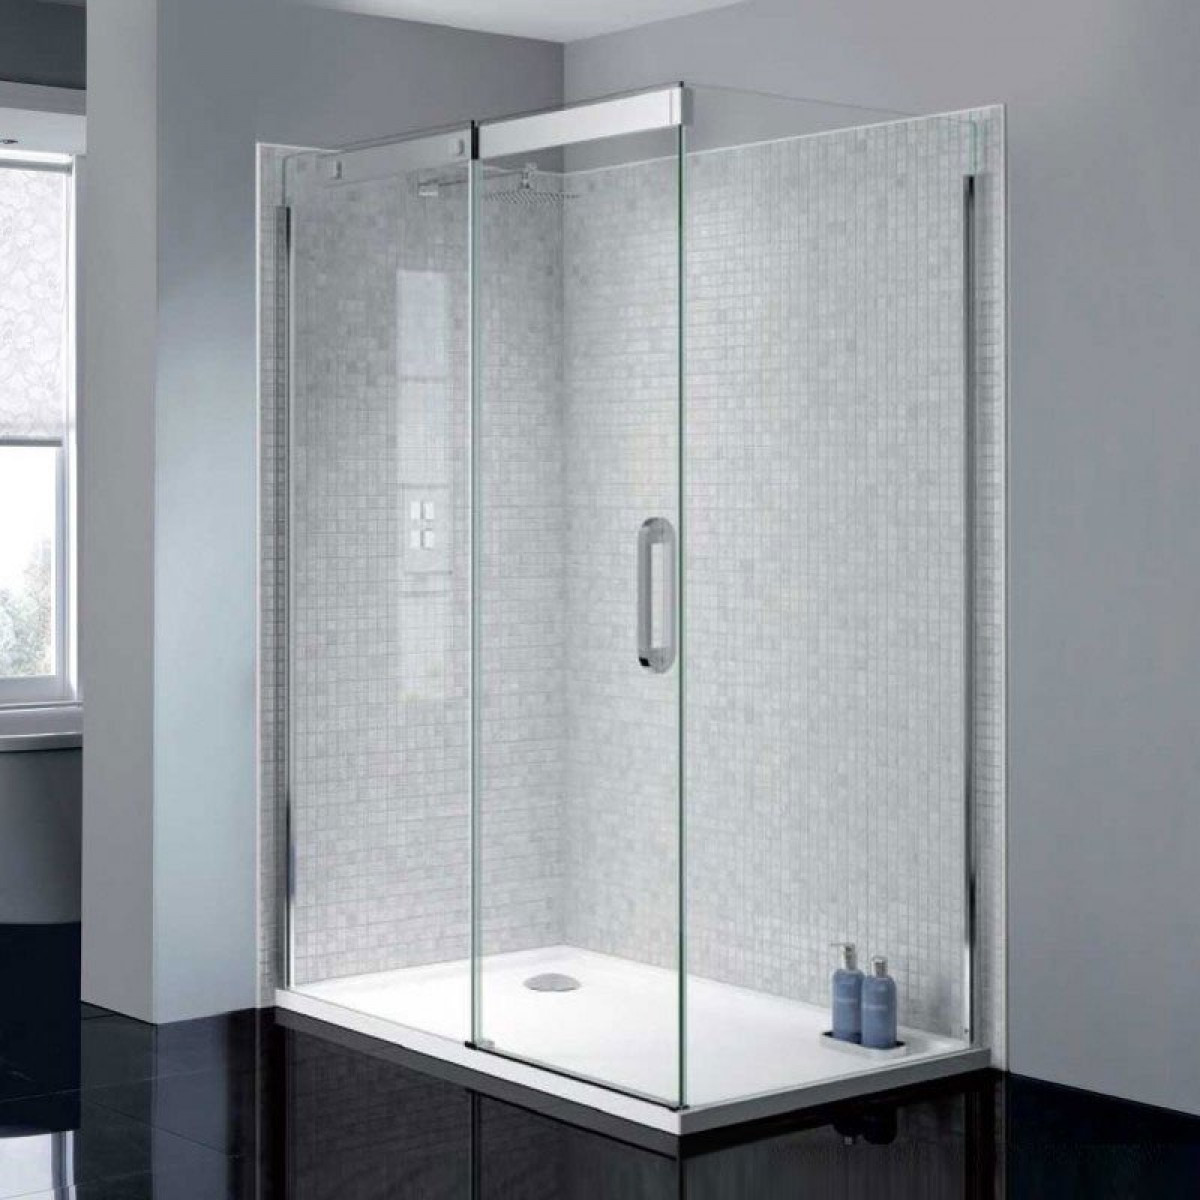 April prestige2 frameless 1200mm sliding shower door for 1200mm shower door sliding